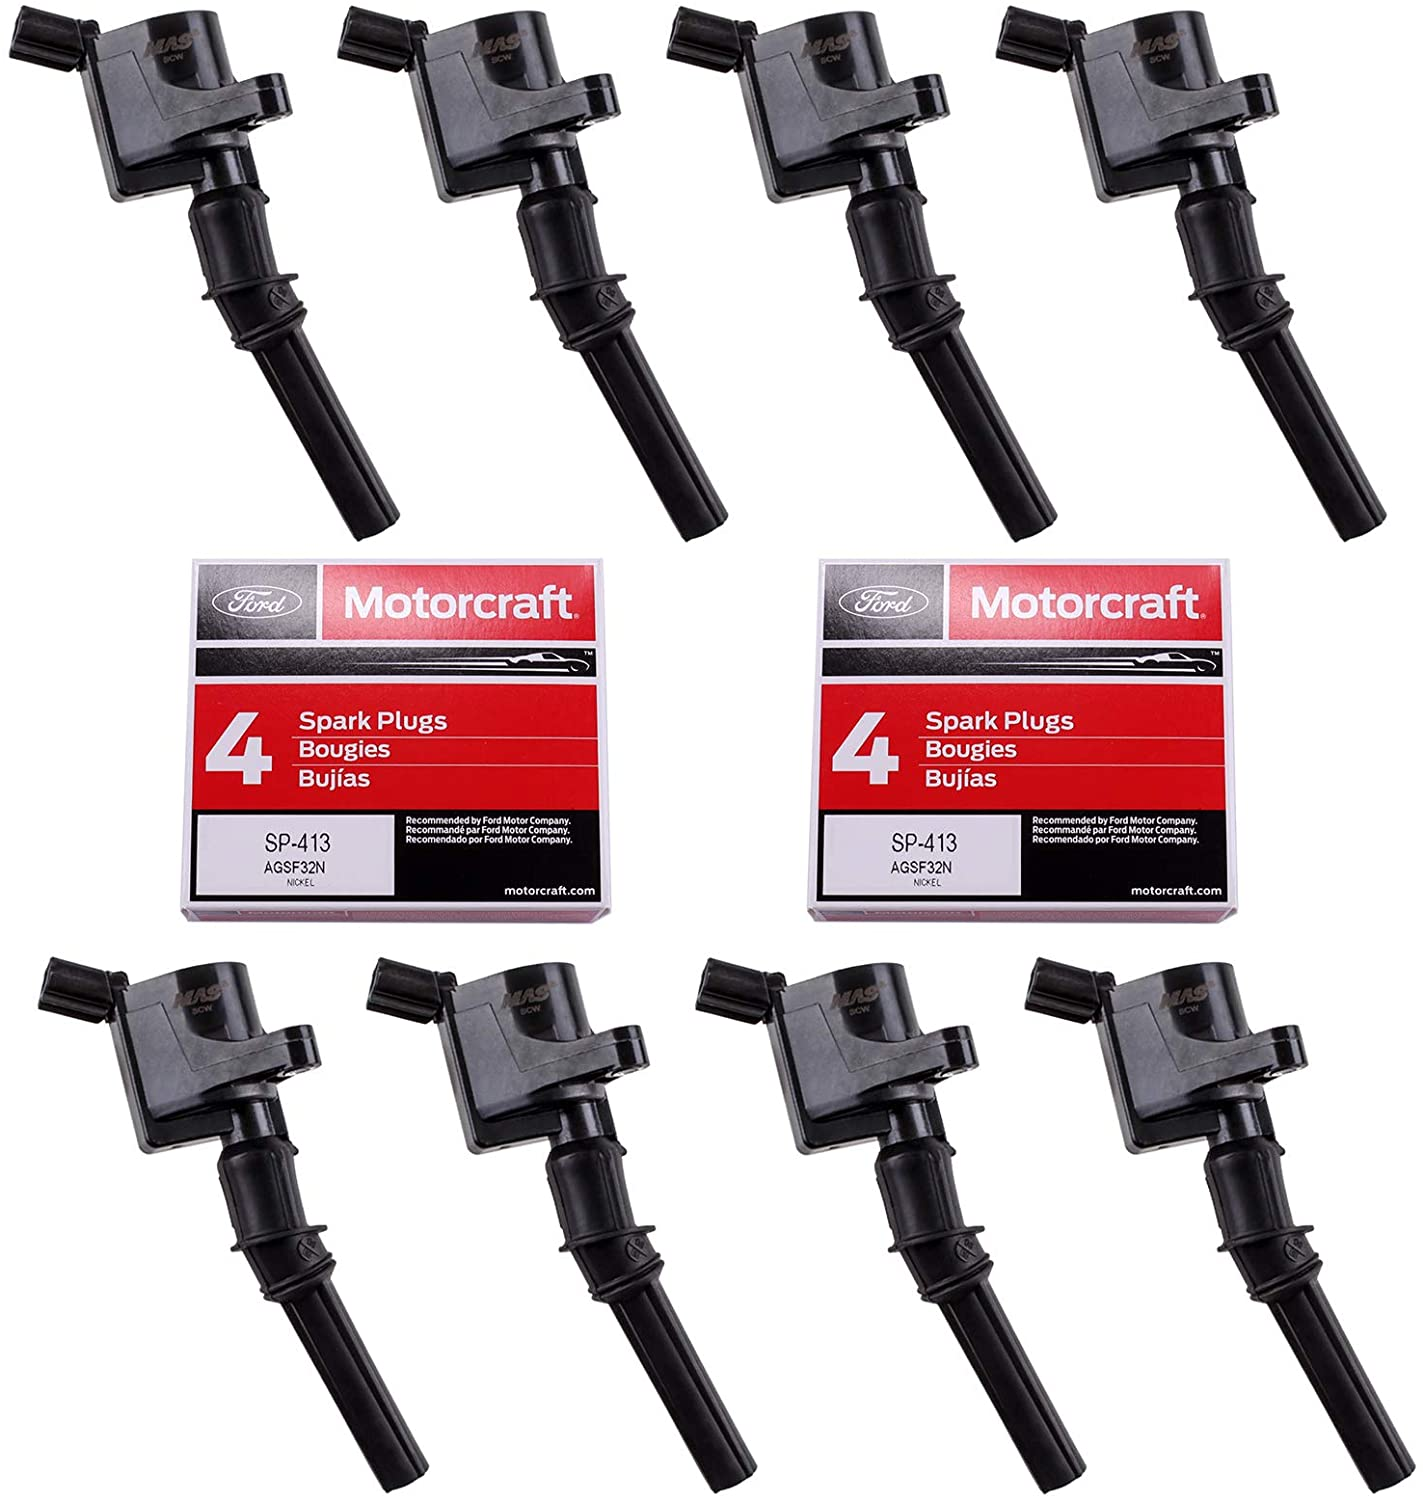 MAS Ignition Coils DG508 and OEM Spark Plugs SP413 For Ford F-150 Mustang V8 4.6L pack of 8